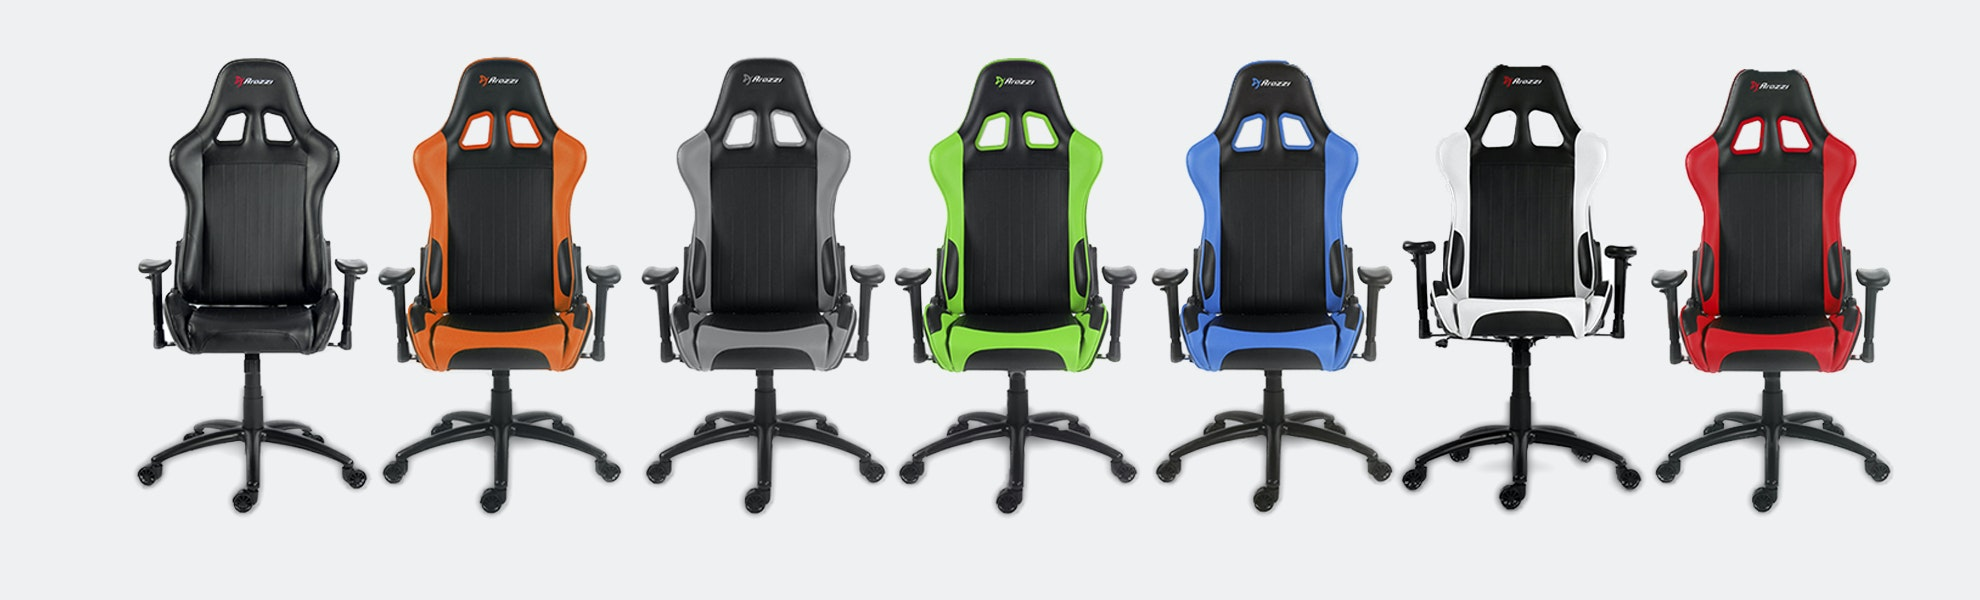 Arozzi Verona/Verona Pro Series Gaming Chairs